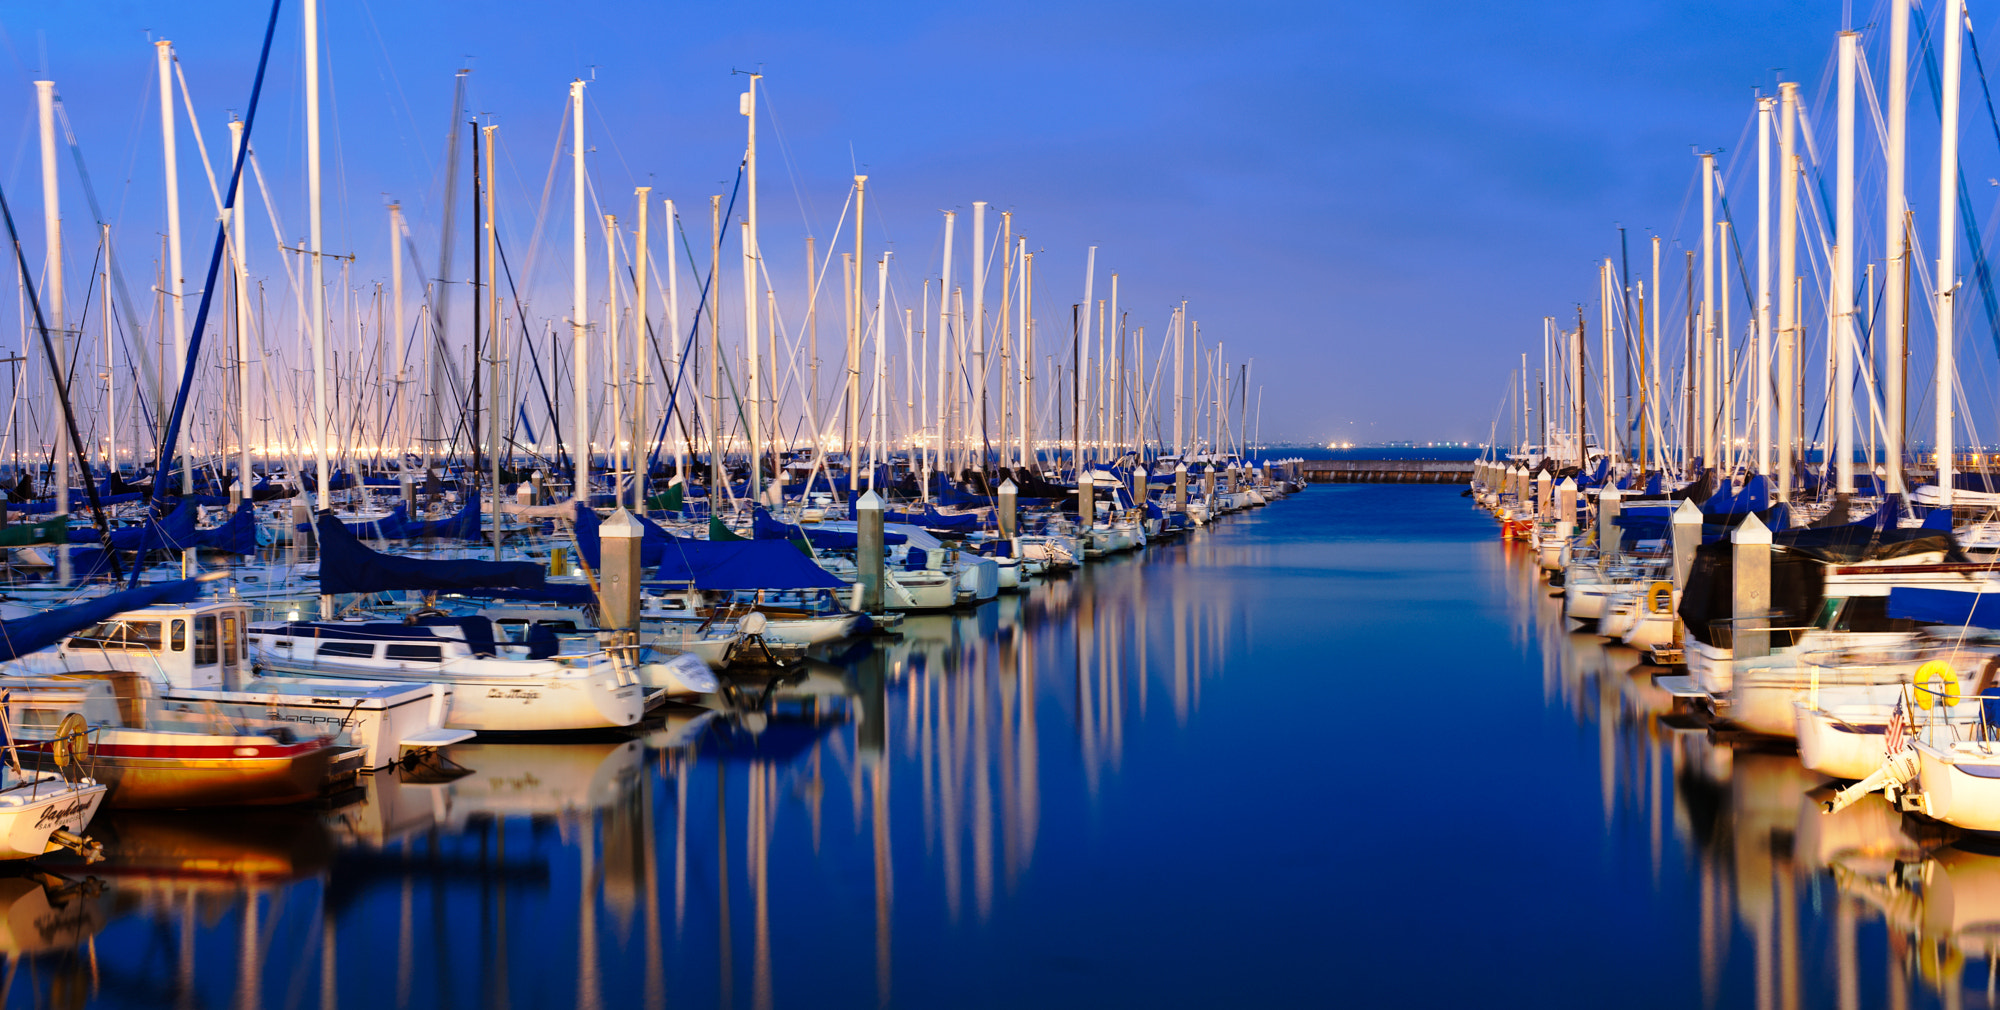 Photograph McCovey Cove at Blue Hour, San Francisco, CA by Craig Hudson on 500px